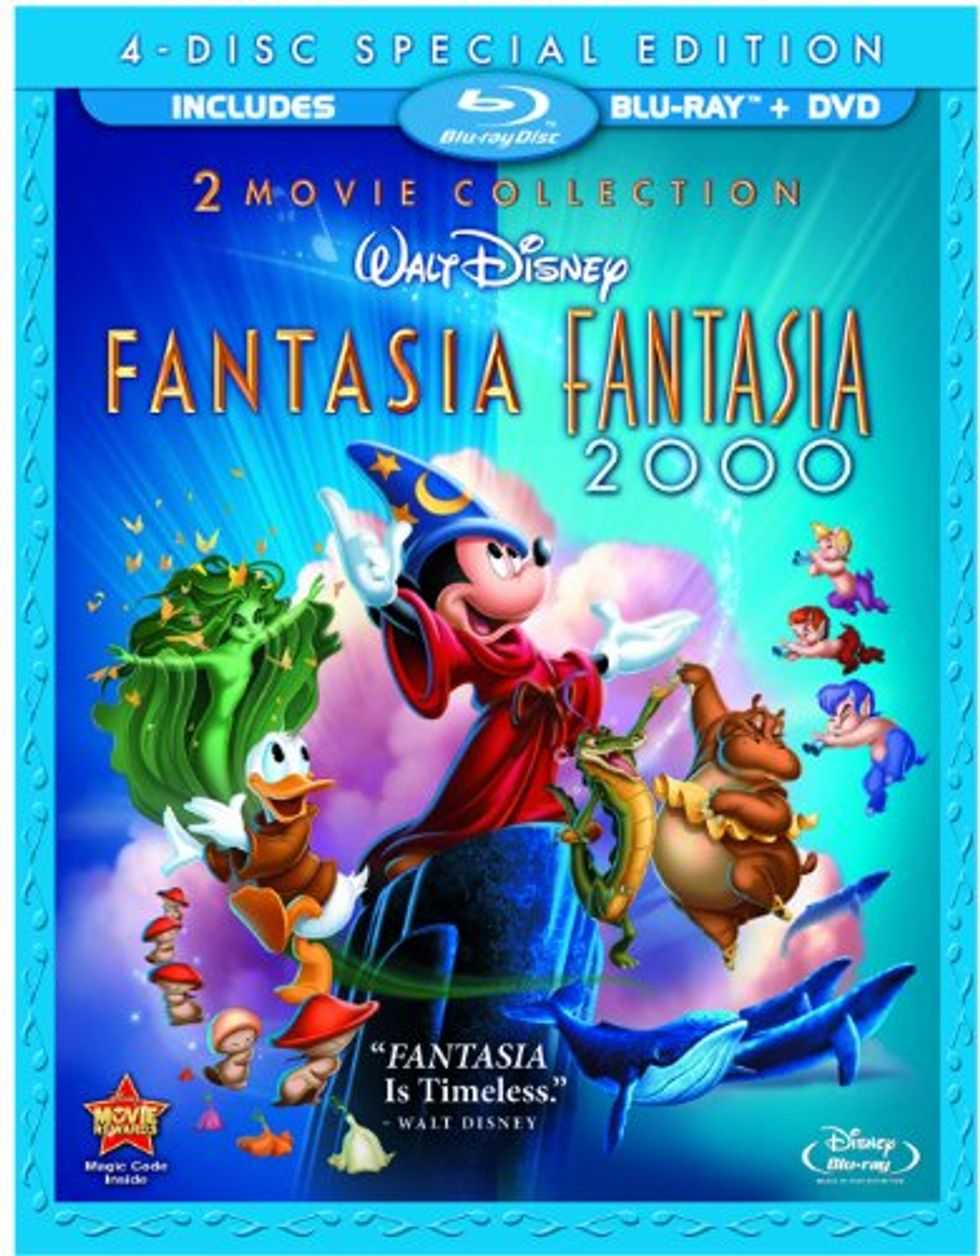 Fantasia On Disney Blu-ray and DVD